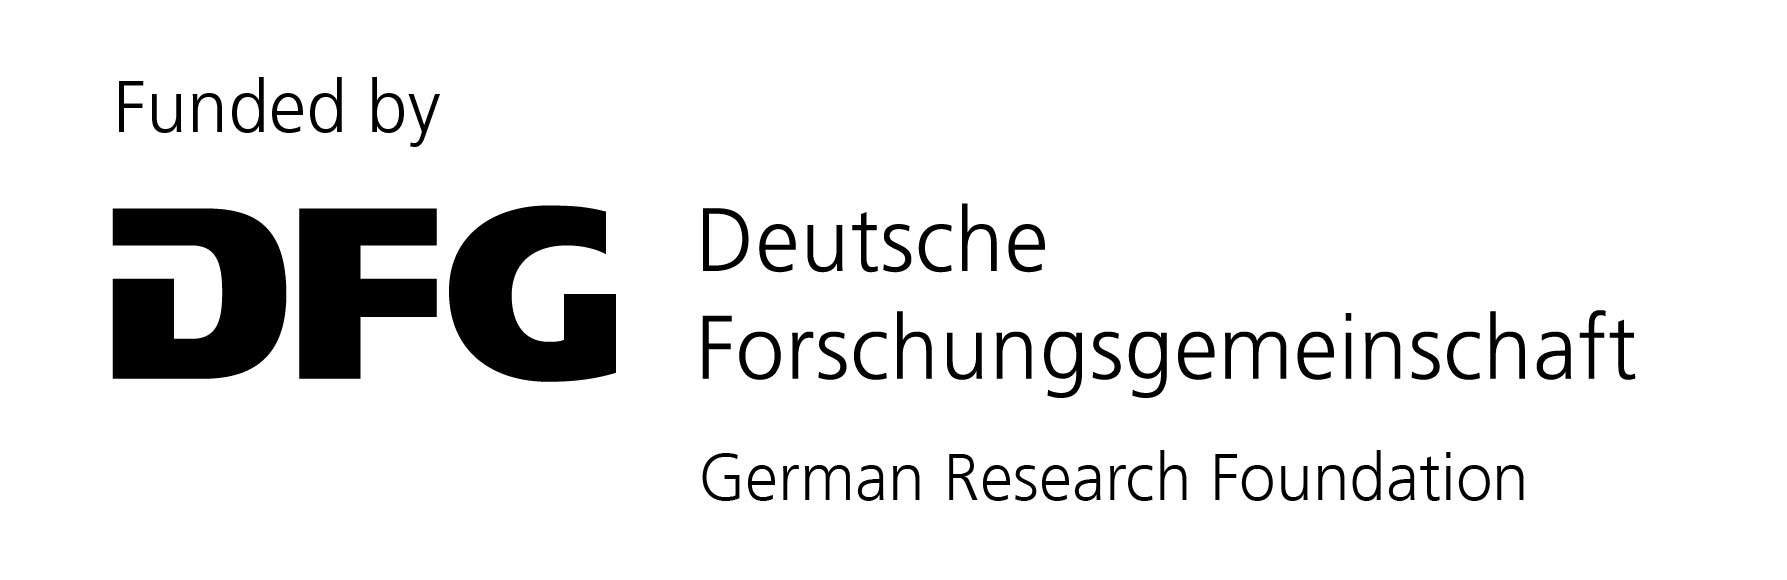 Funded by DFG German Research Foundation